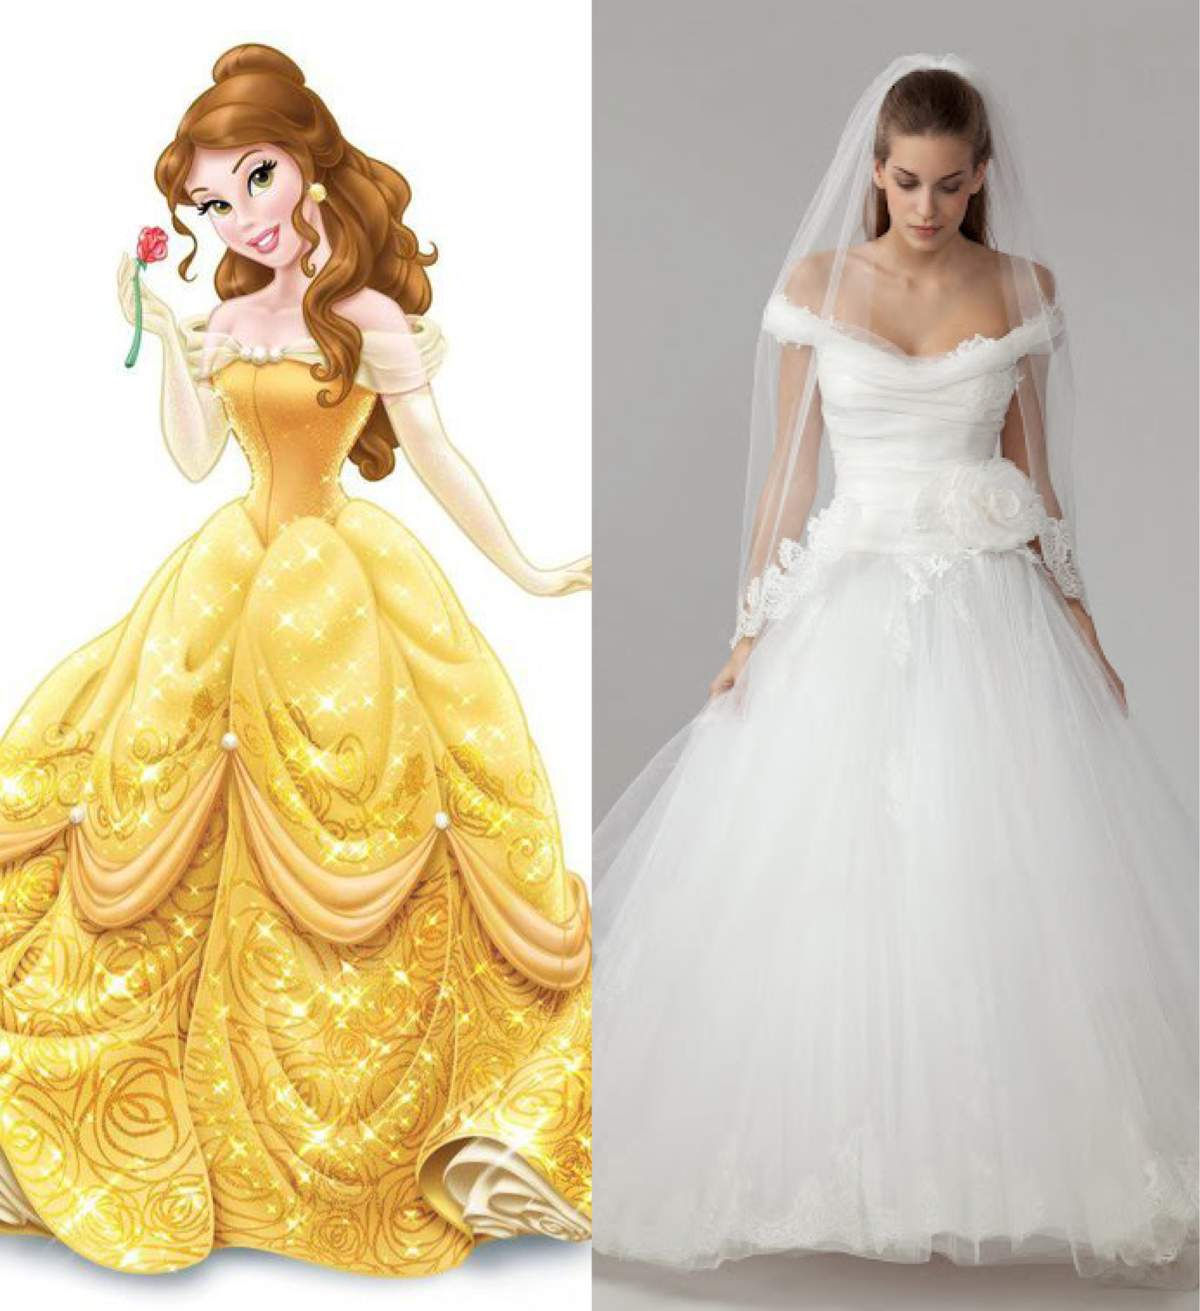 Princes glamour in off-the-shoulder gown